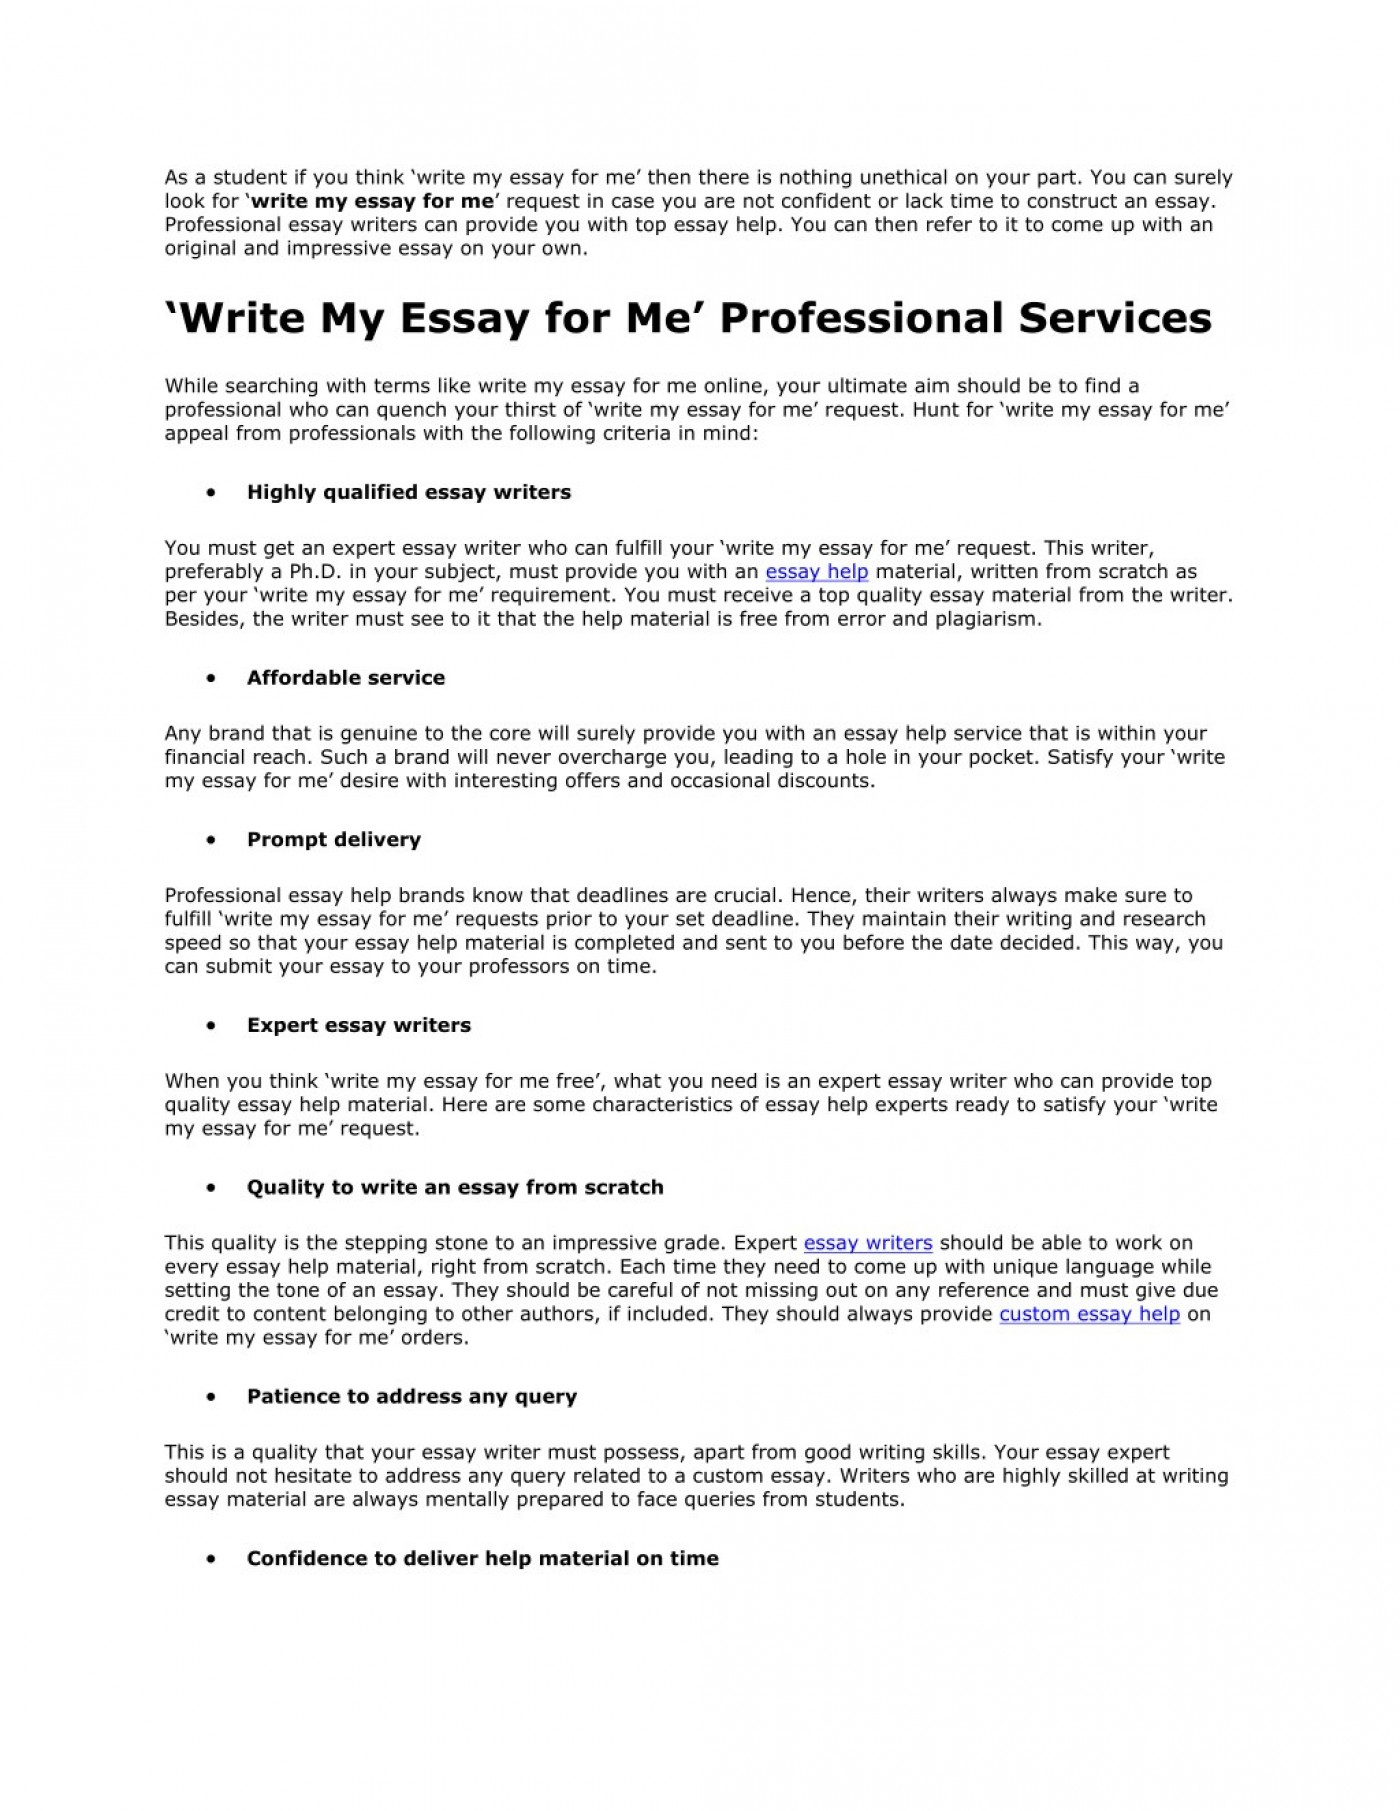 017 Write My Essay For Me Example As Student If You Think Surprising Me.org Free Online Uk 1400